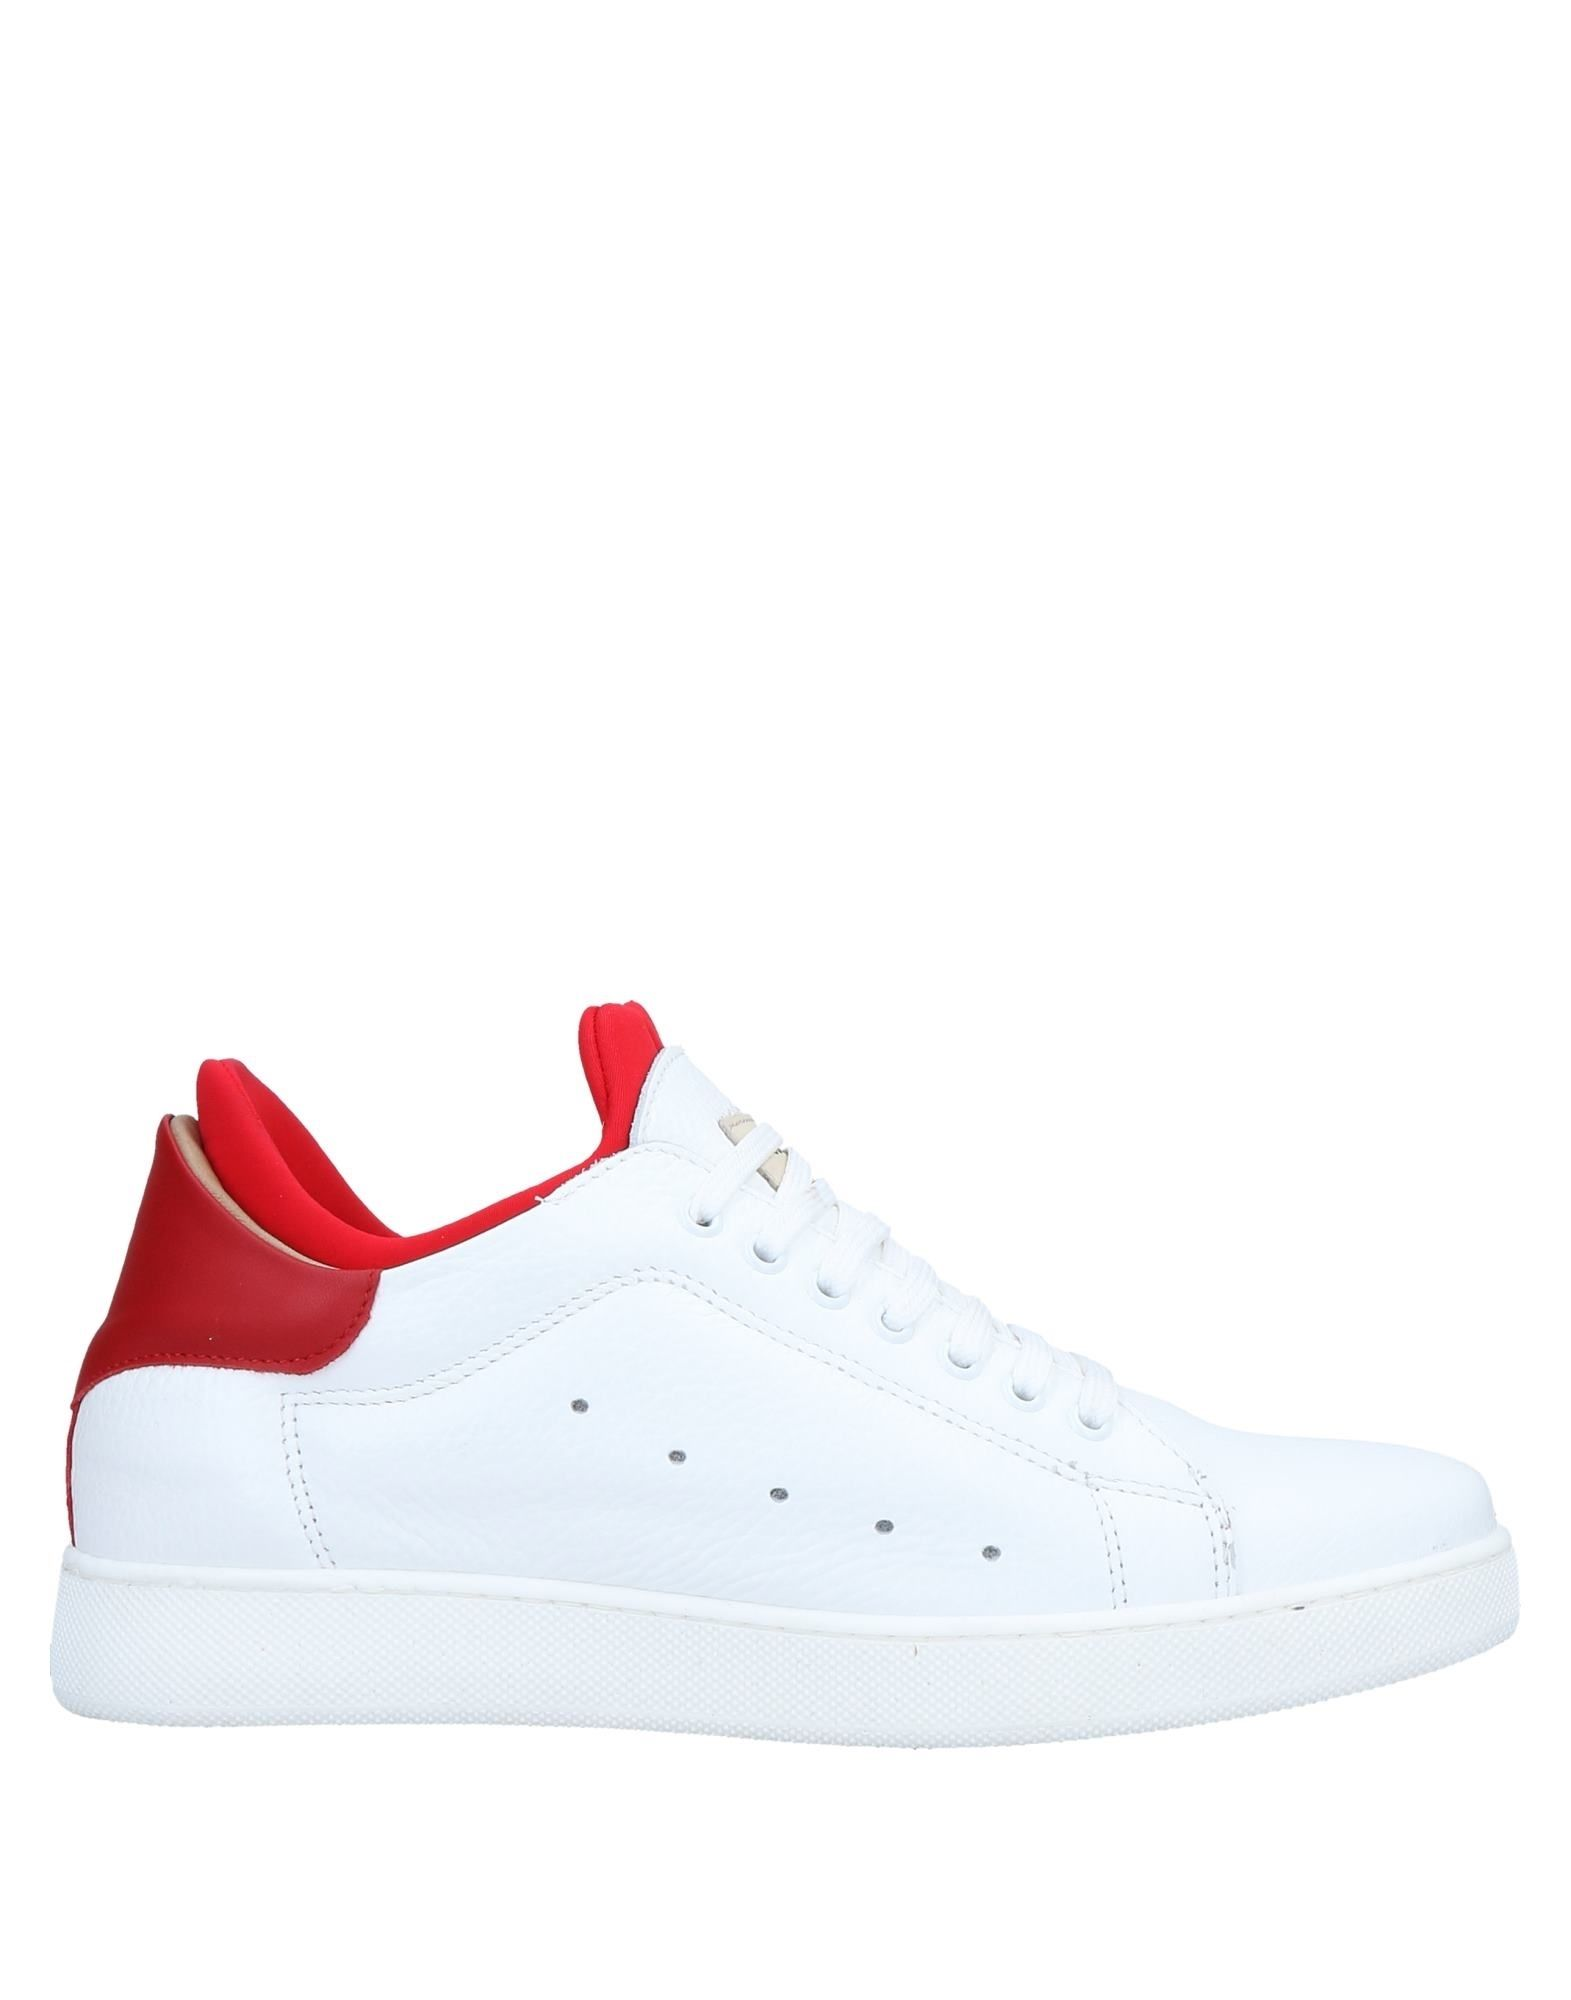 Calpierre Sneakers - Men Calpierre Sneakers online on 11579476WK  United Kingdom - 11579476WK on fde273